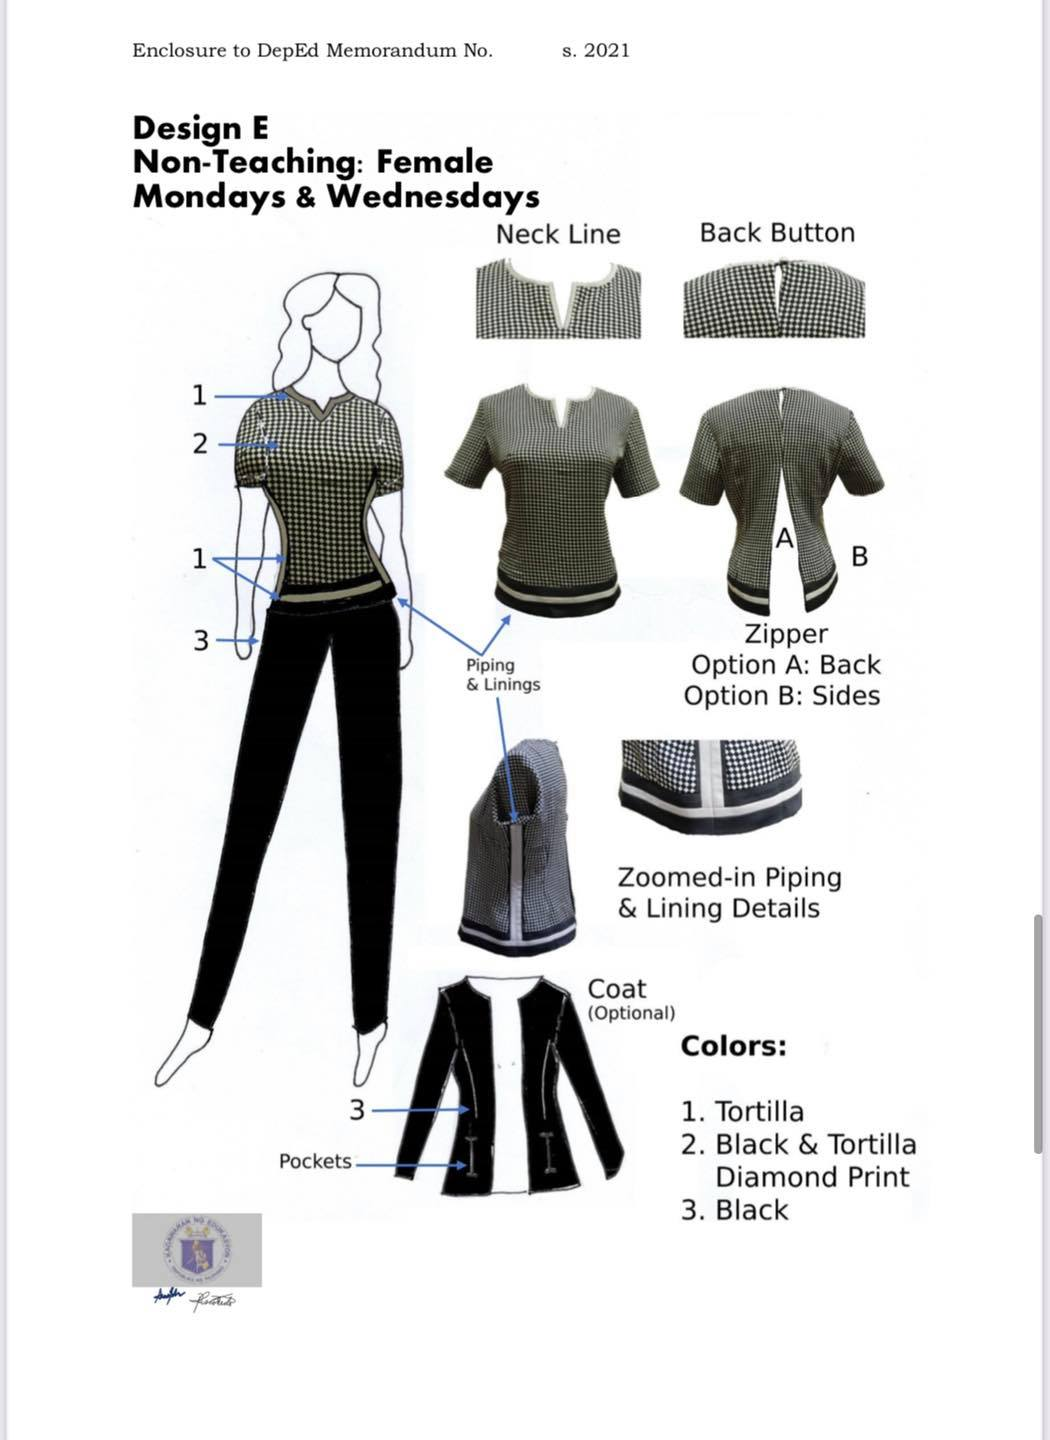 DepEd National Uniform Design E for Female Non-Teaching Personnel (Mondays and Wednesdays)